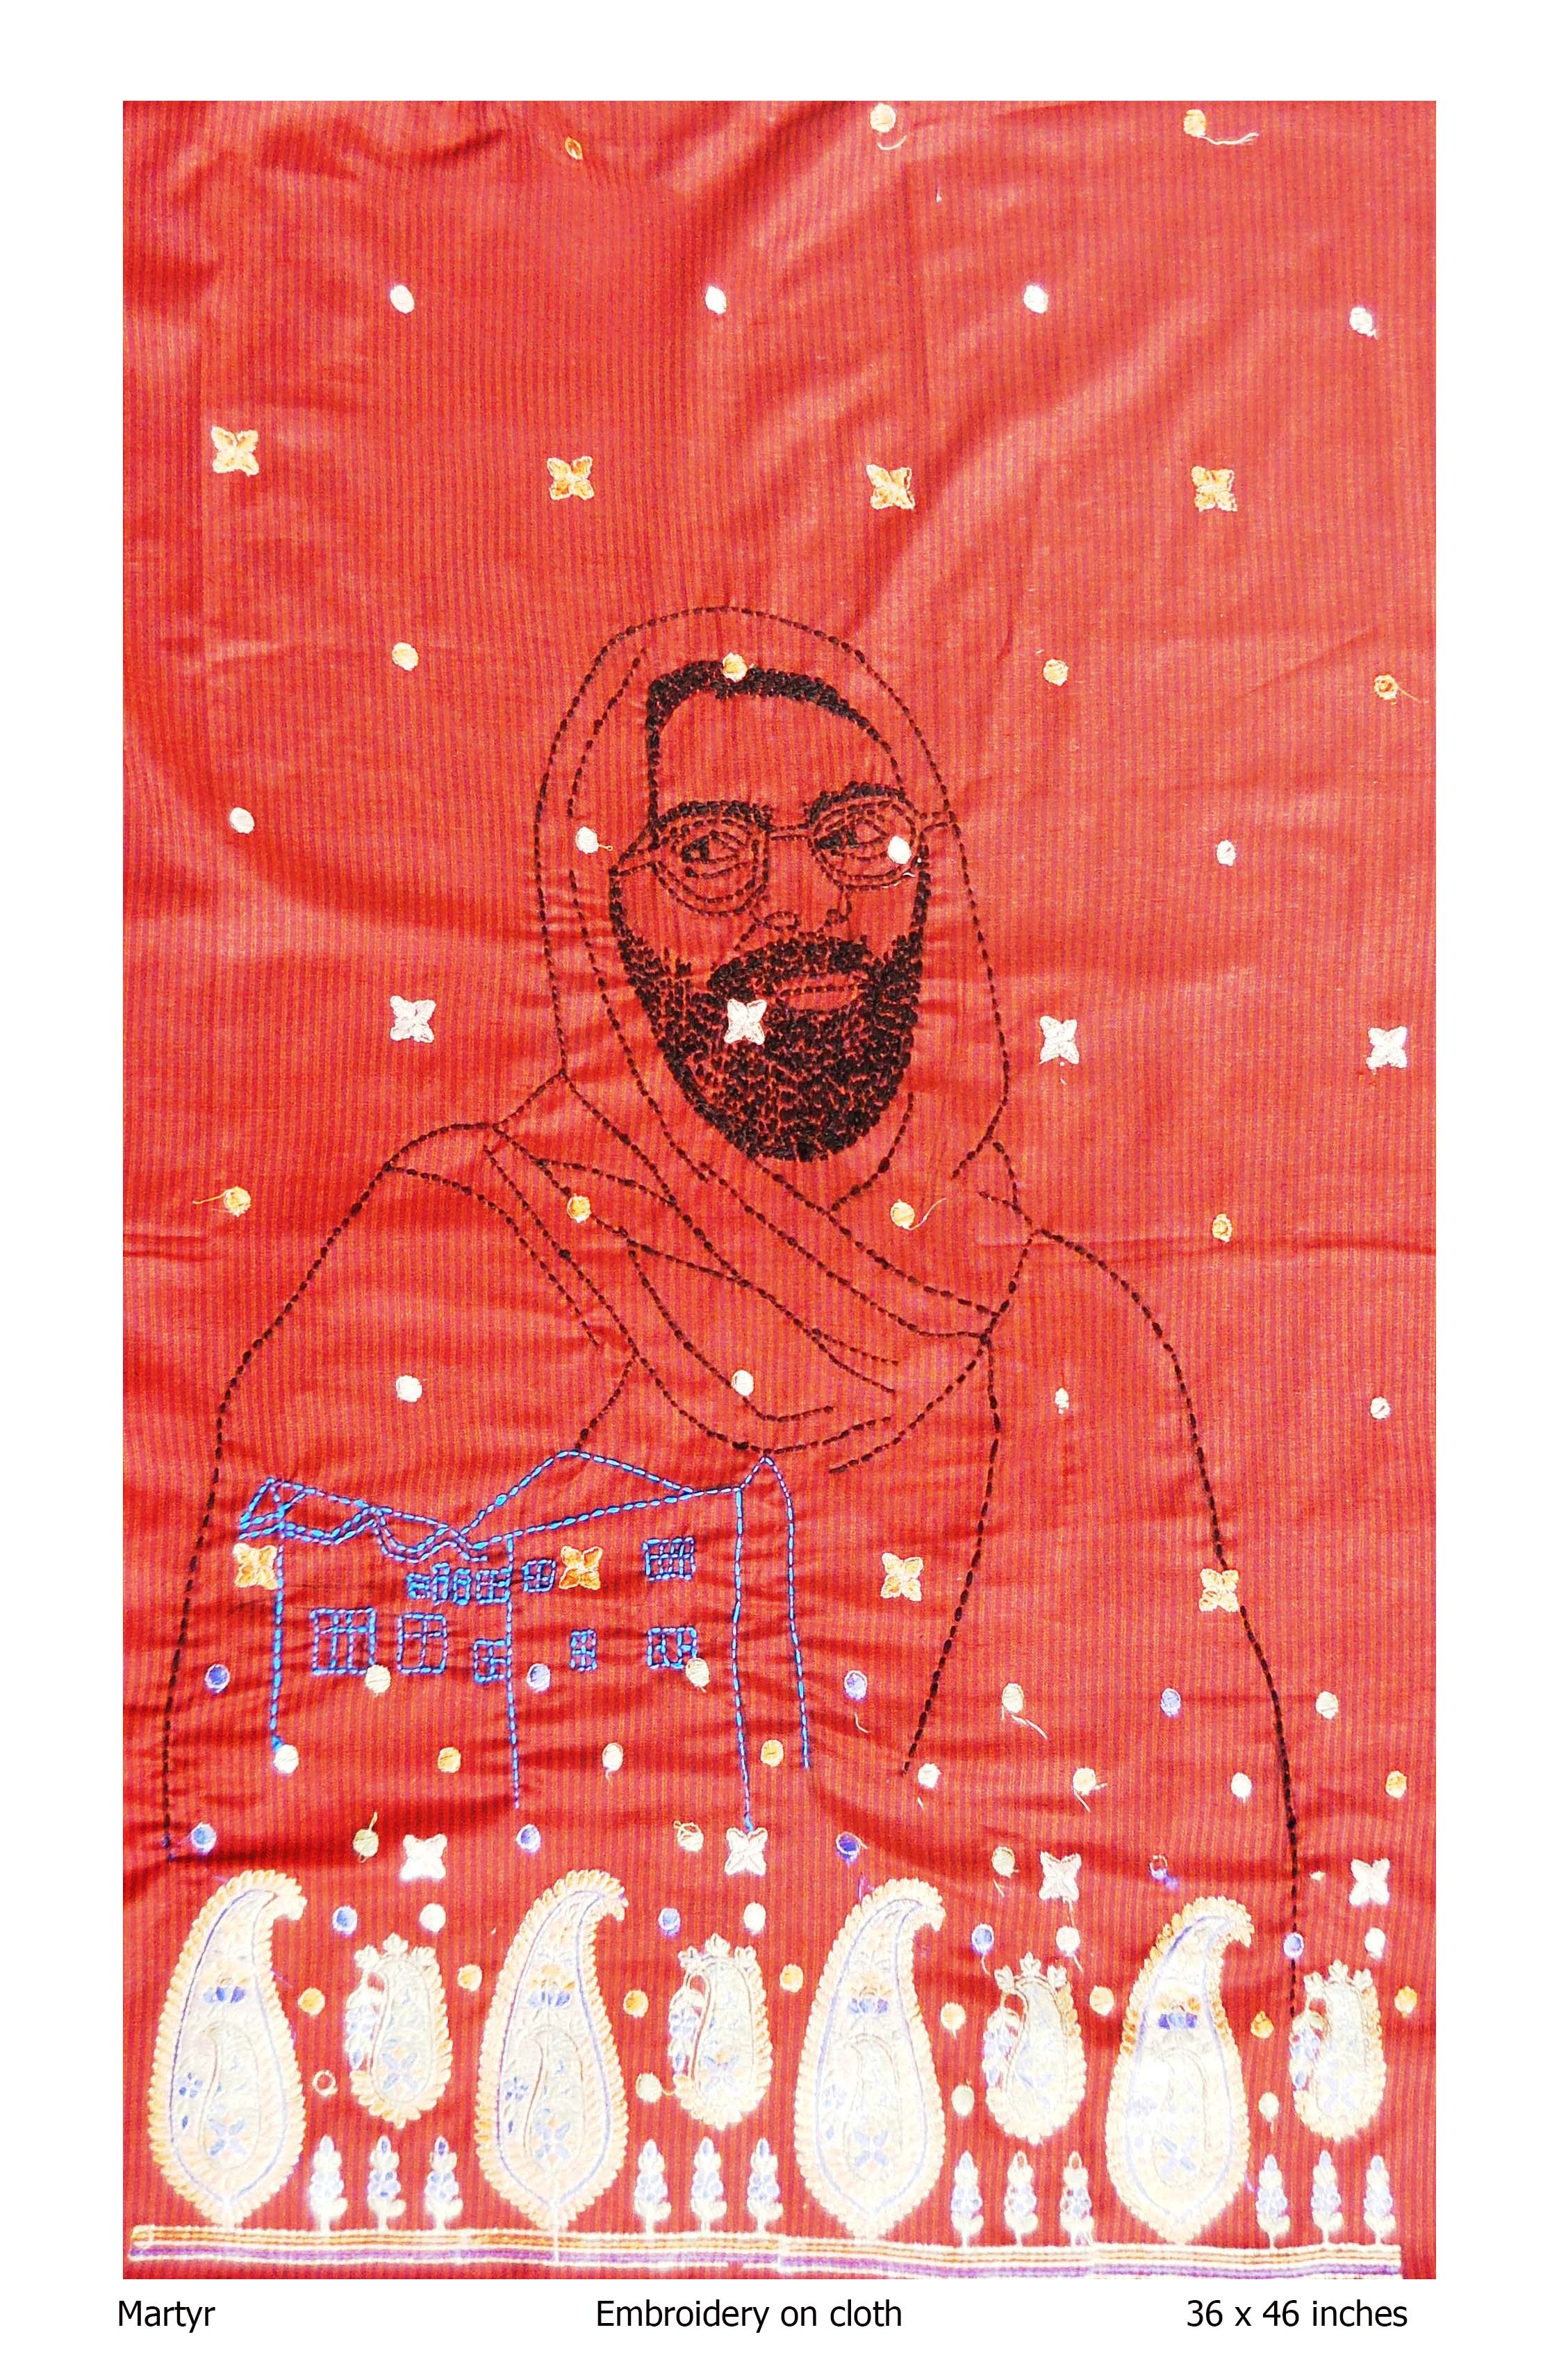 Martyr, Embroidery on cloth, Rollie Mukherjee